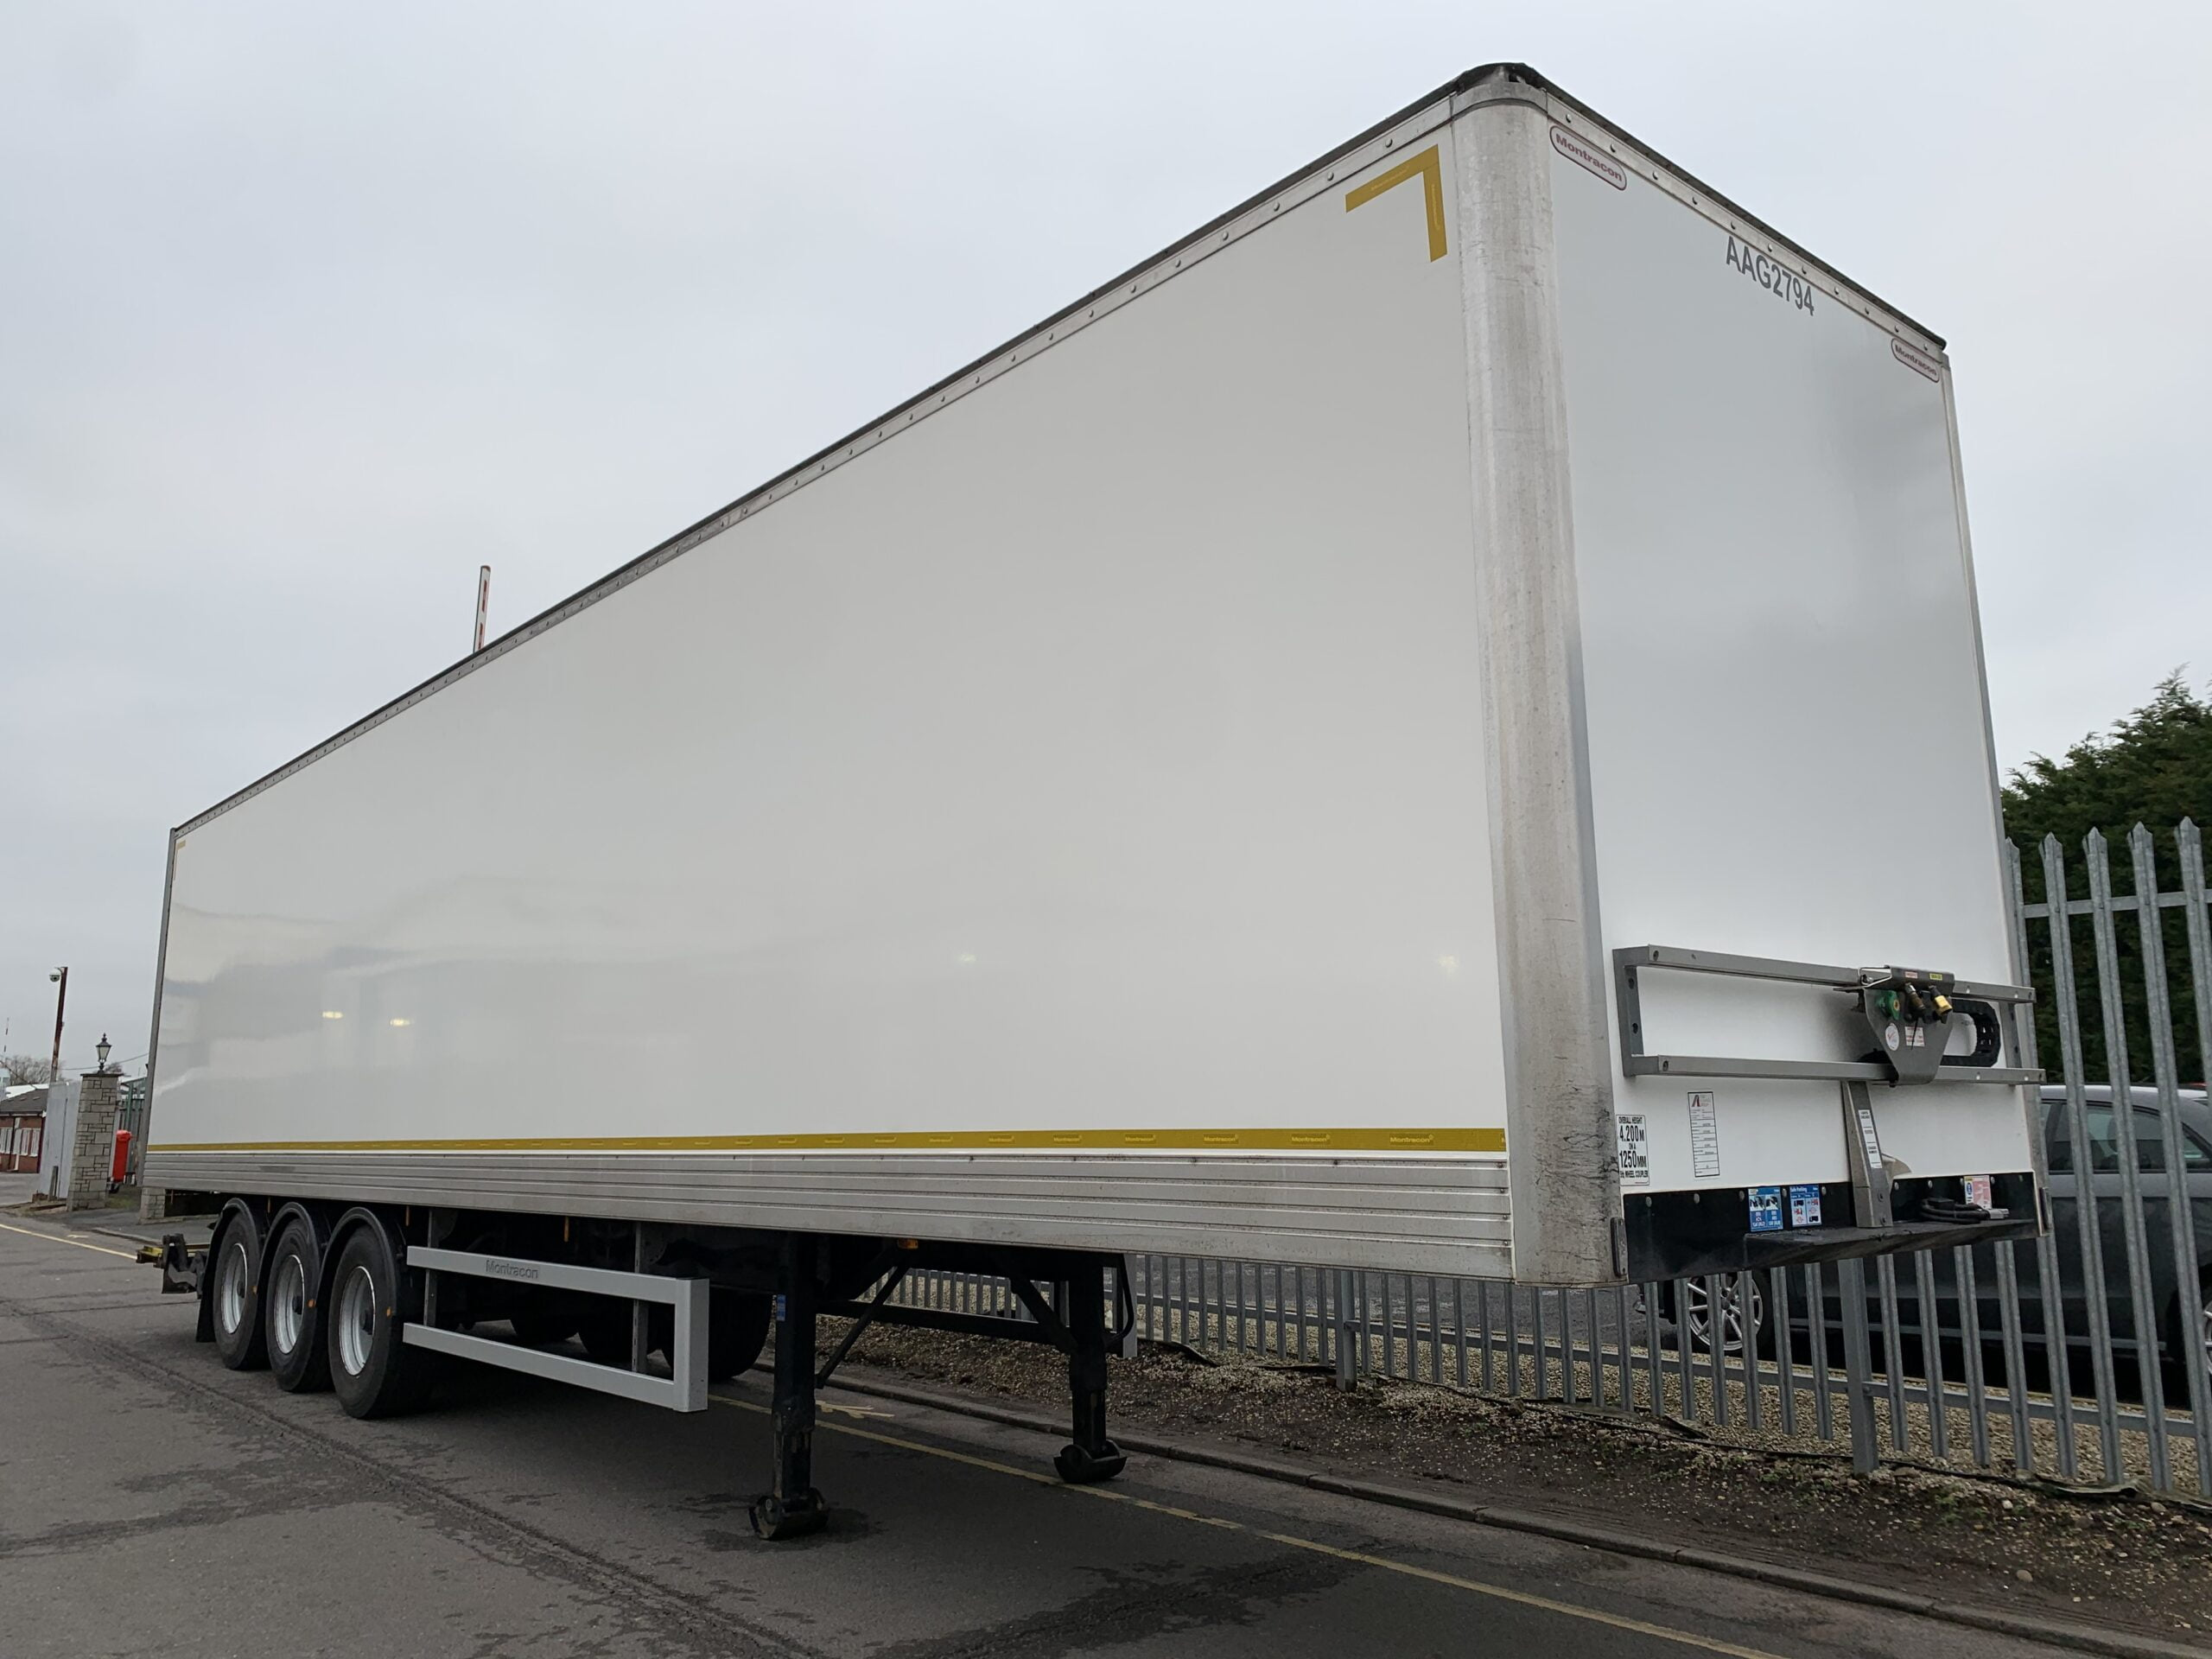 2018 Montracon Box Tailift, 4.2m External Height, BPW Axles, Drum Brakes, Block Floor, Roller Shutter Rear Door, Dhollandia Tuckunder Tailift (1500kg Capacity), Raise Lower Valve Facility, Choice Available.